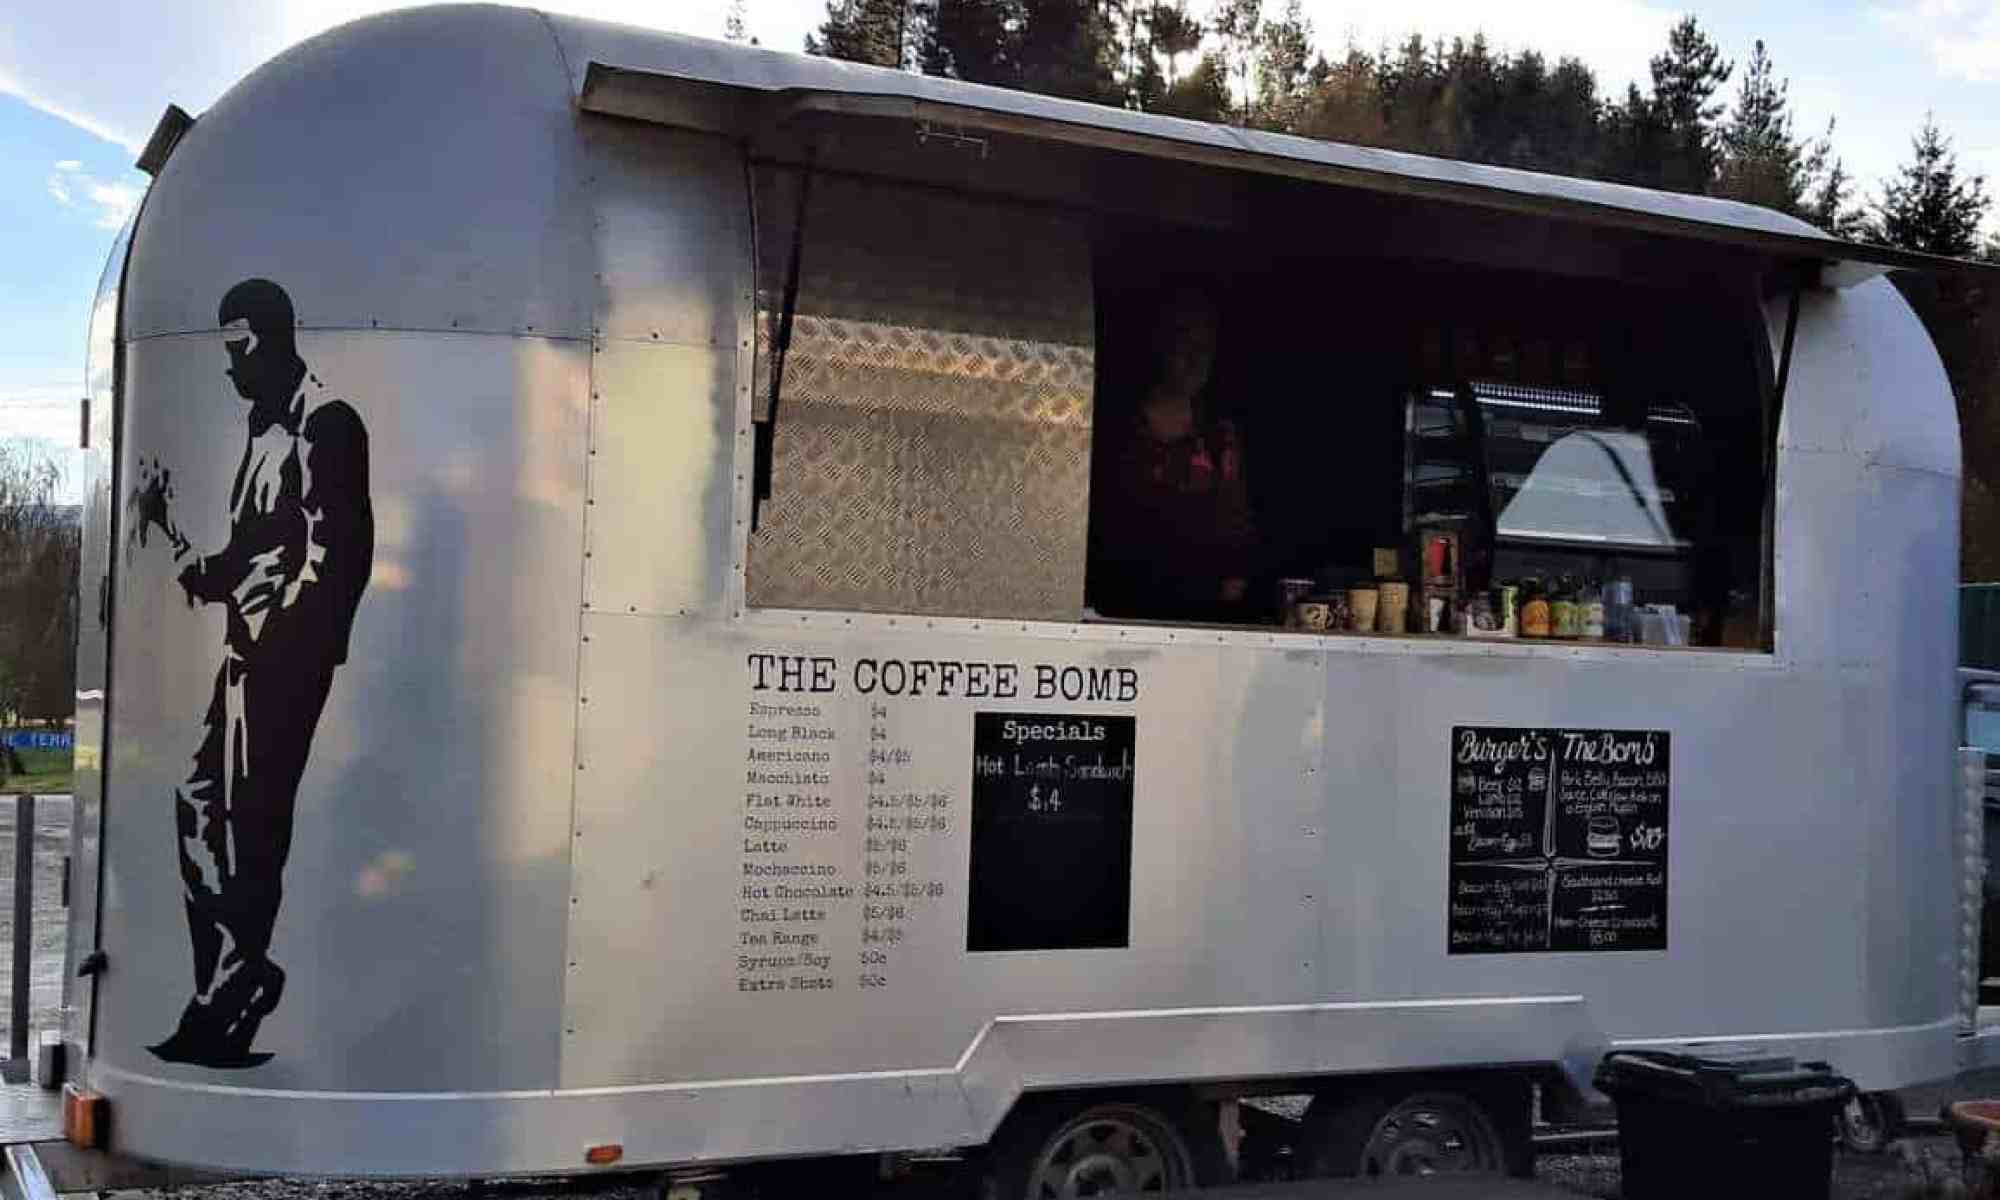 The Coffee Bomb Food Trailer in Garston Village